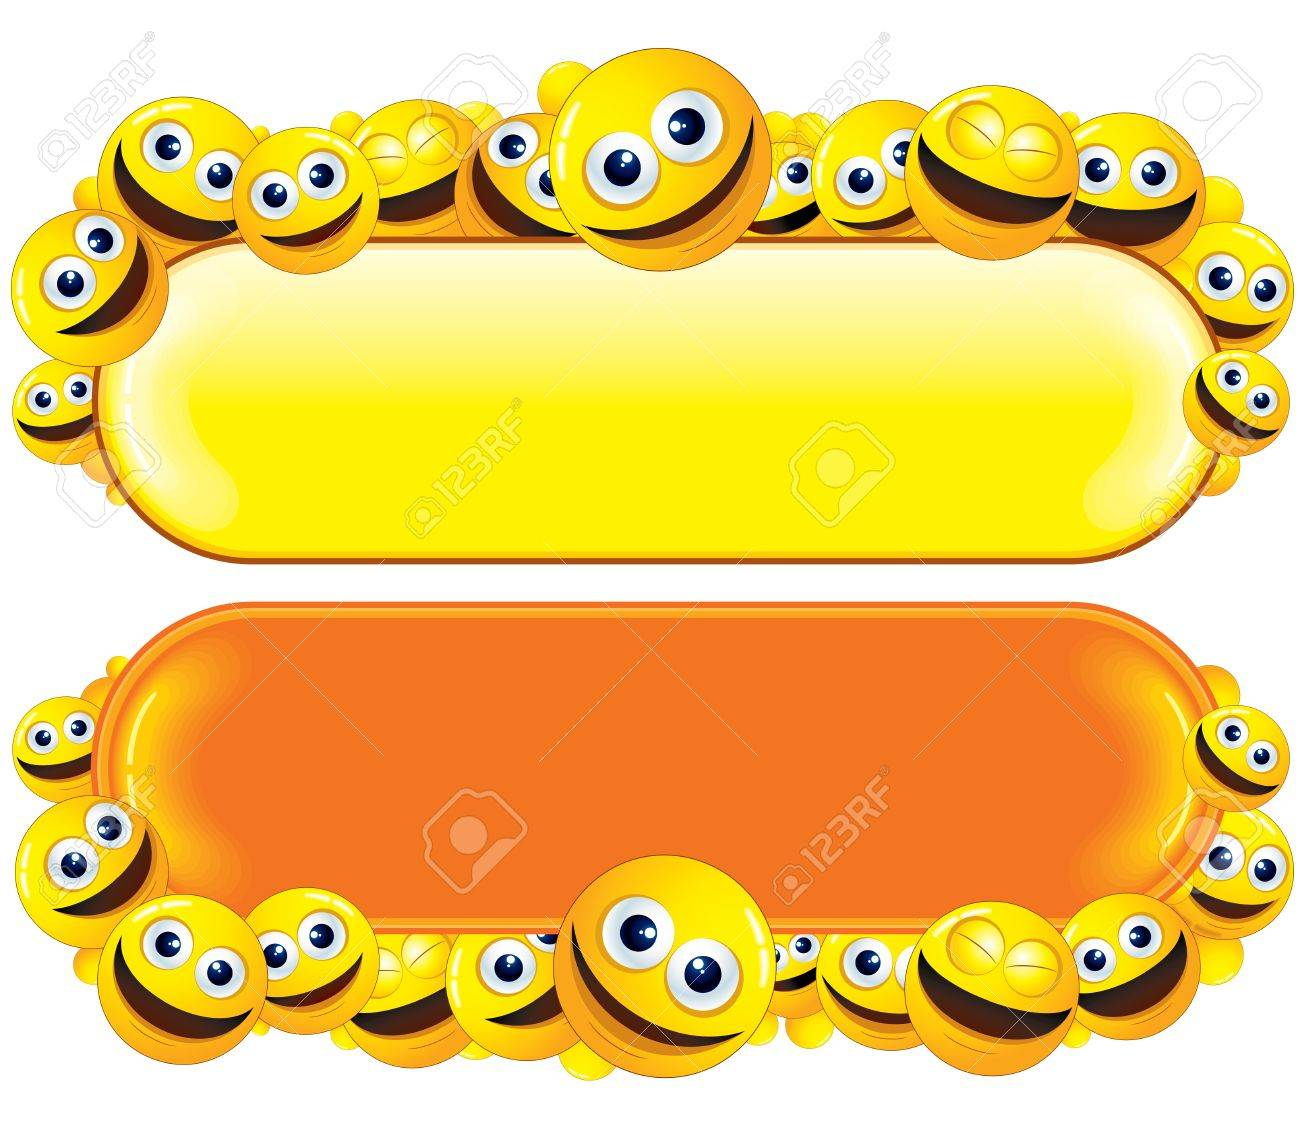 Funny balloon faces - Balloon Smiley Funny Banner With Smiley Faces Stock Photo